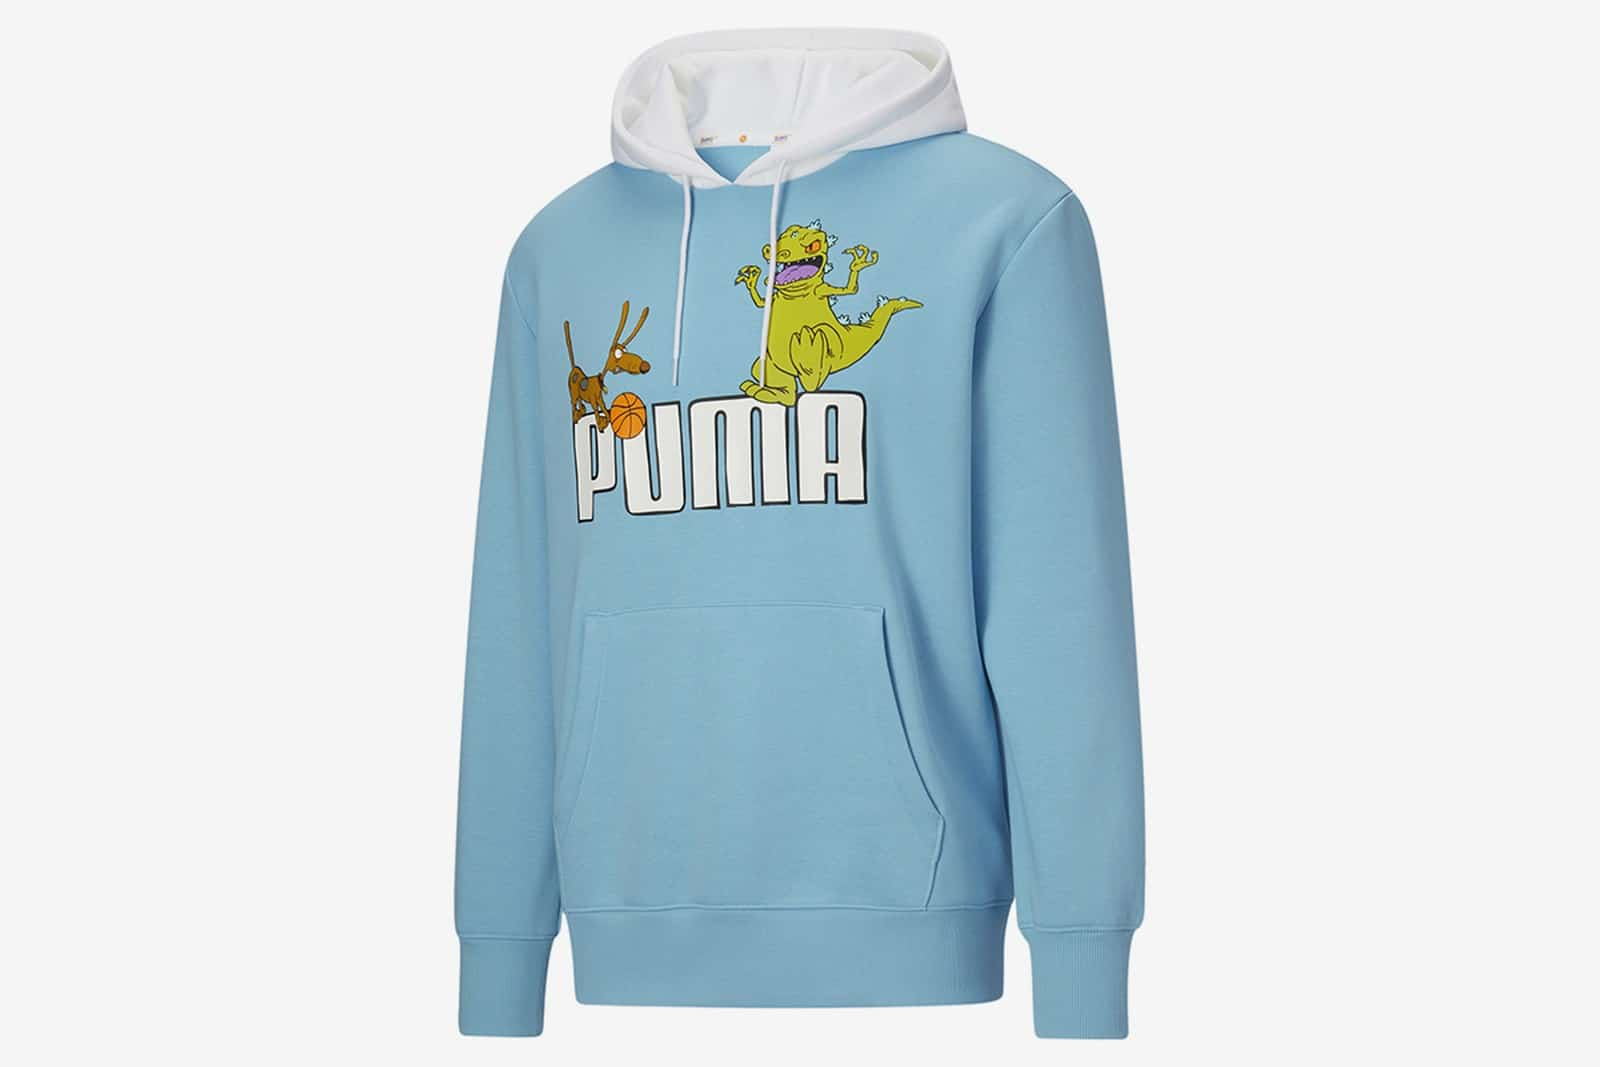 The Puma x Rugrats collection is available now and it's full of '90s nostalgia 21